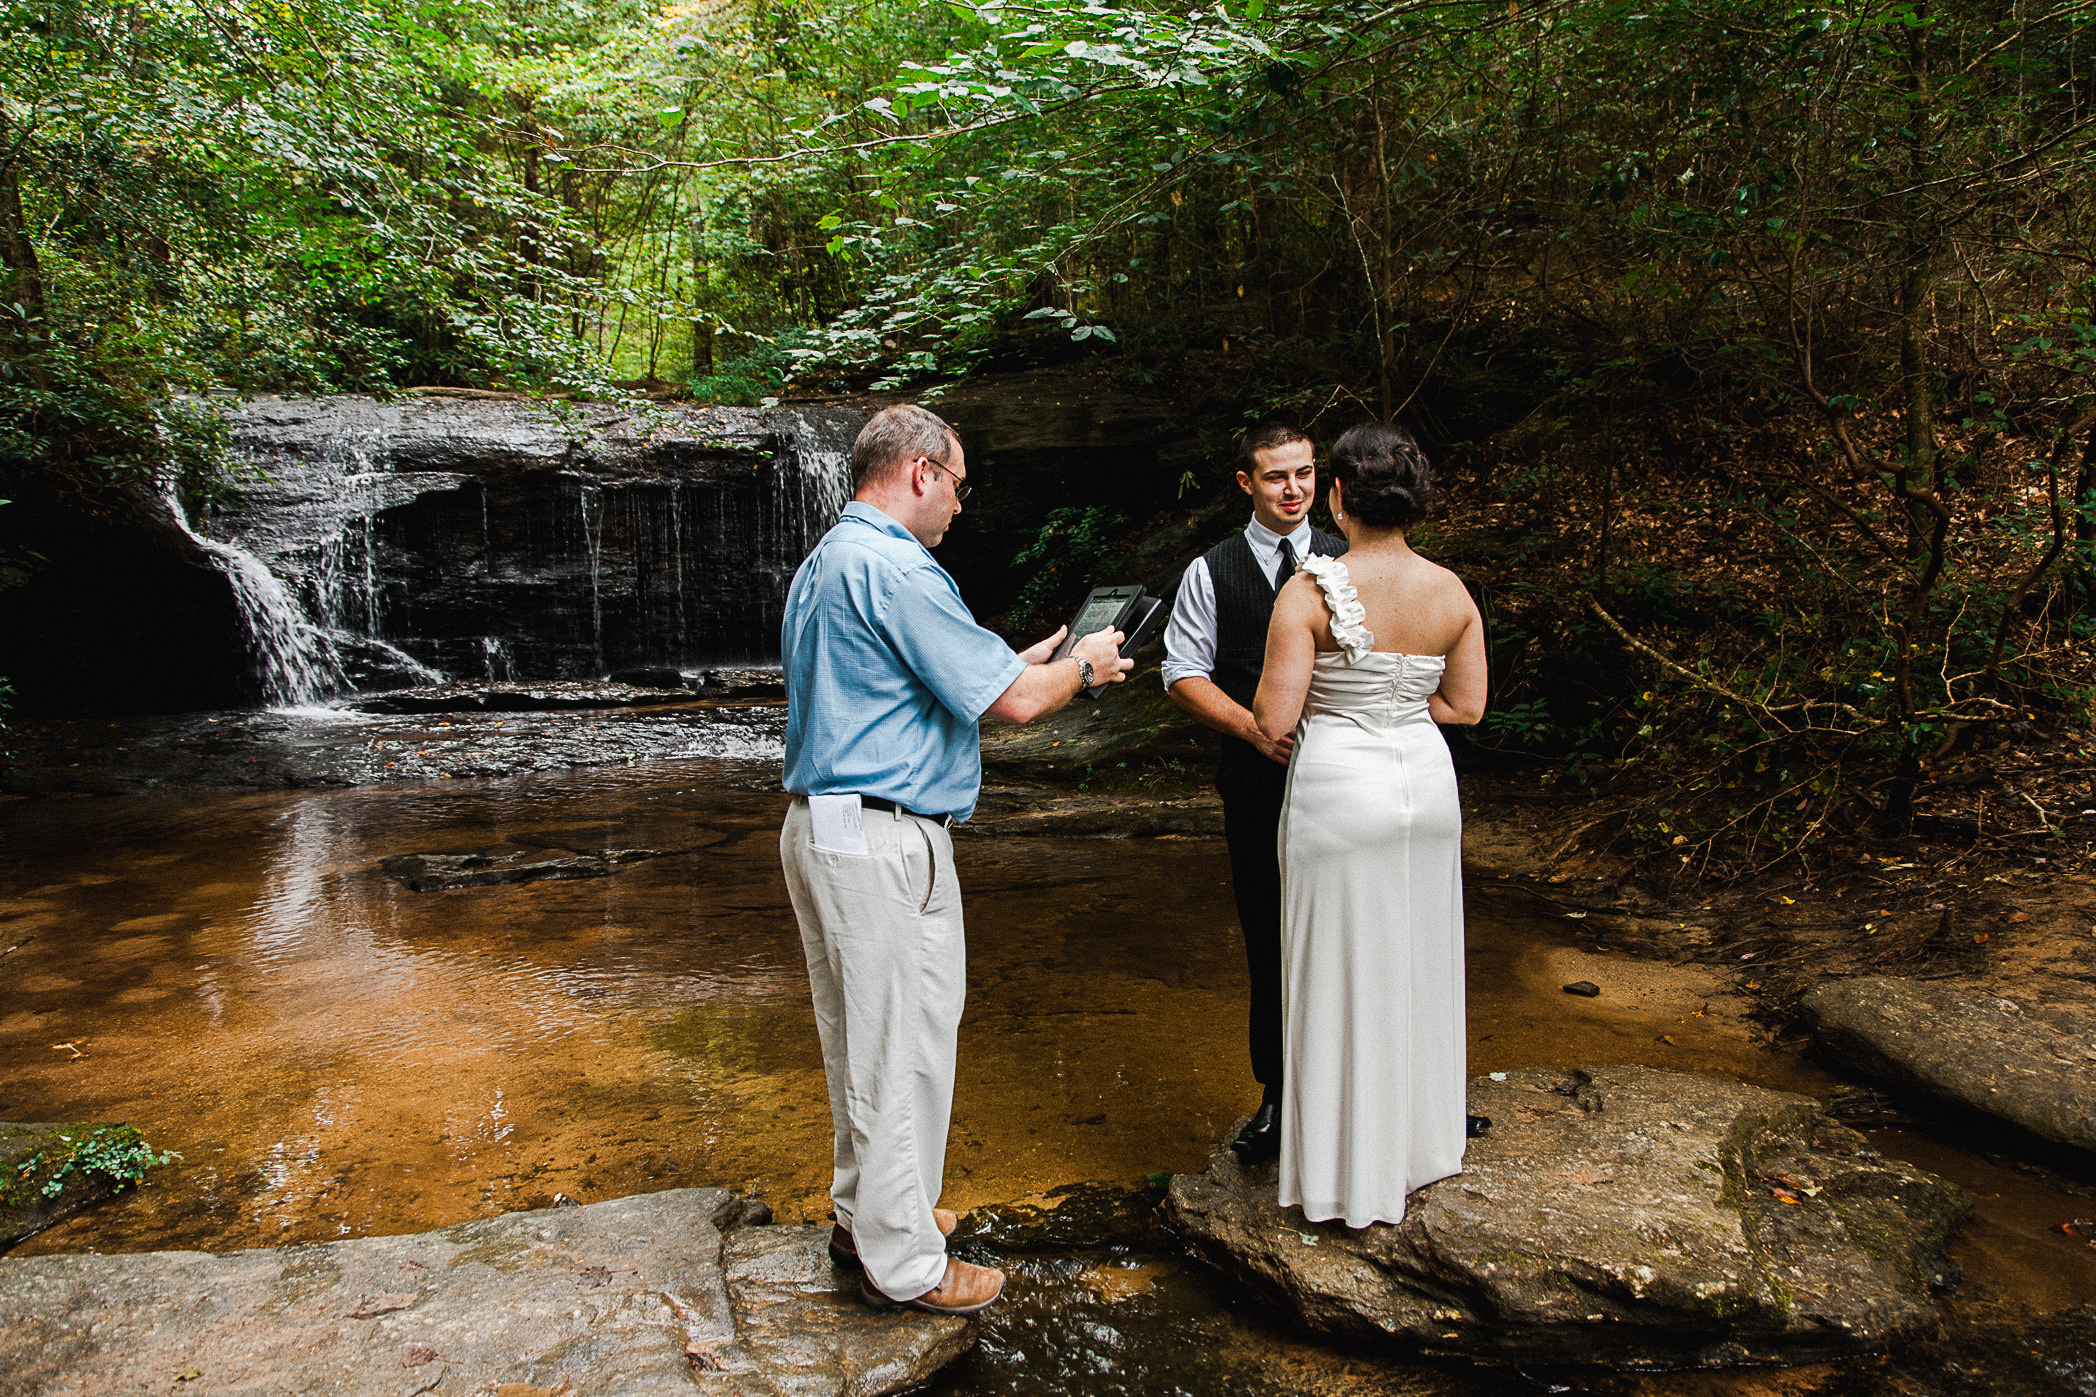 wildcat_falls_wedding (6 of 36).jpg